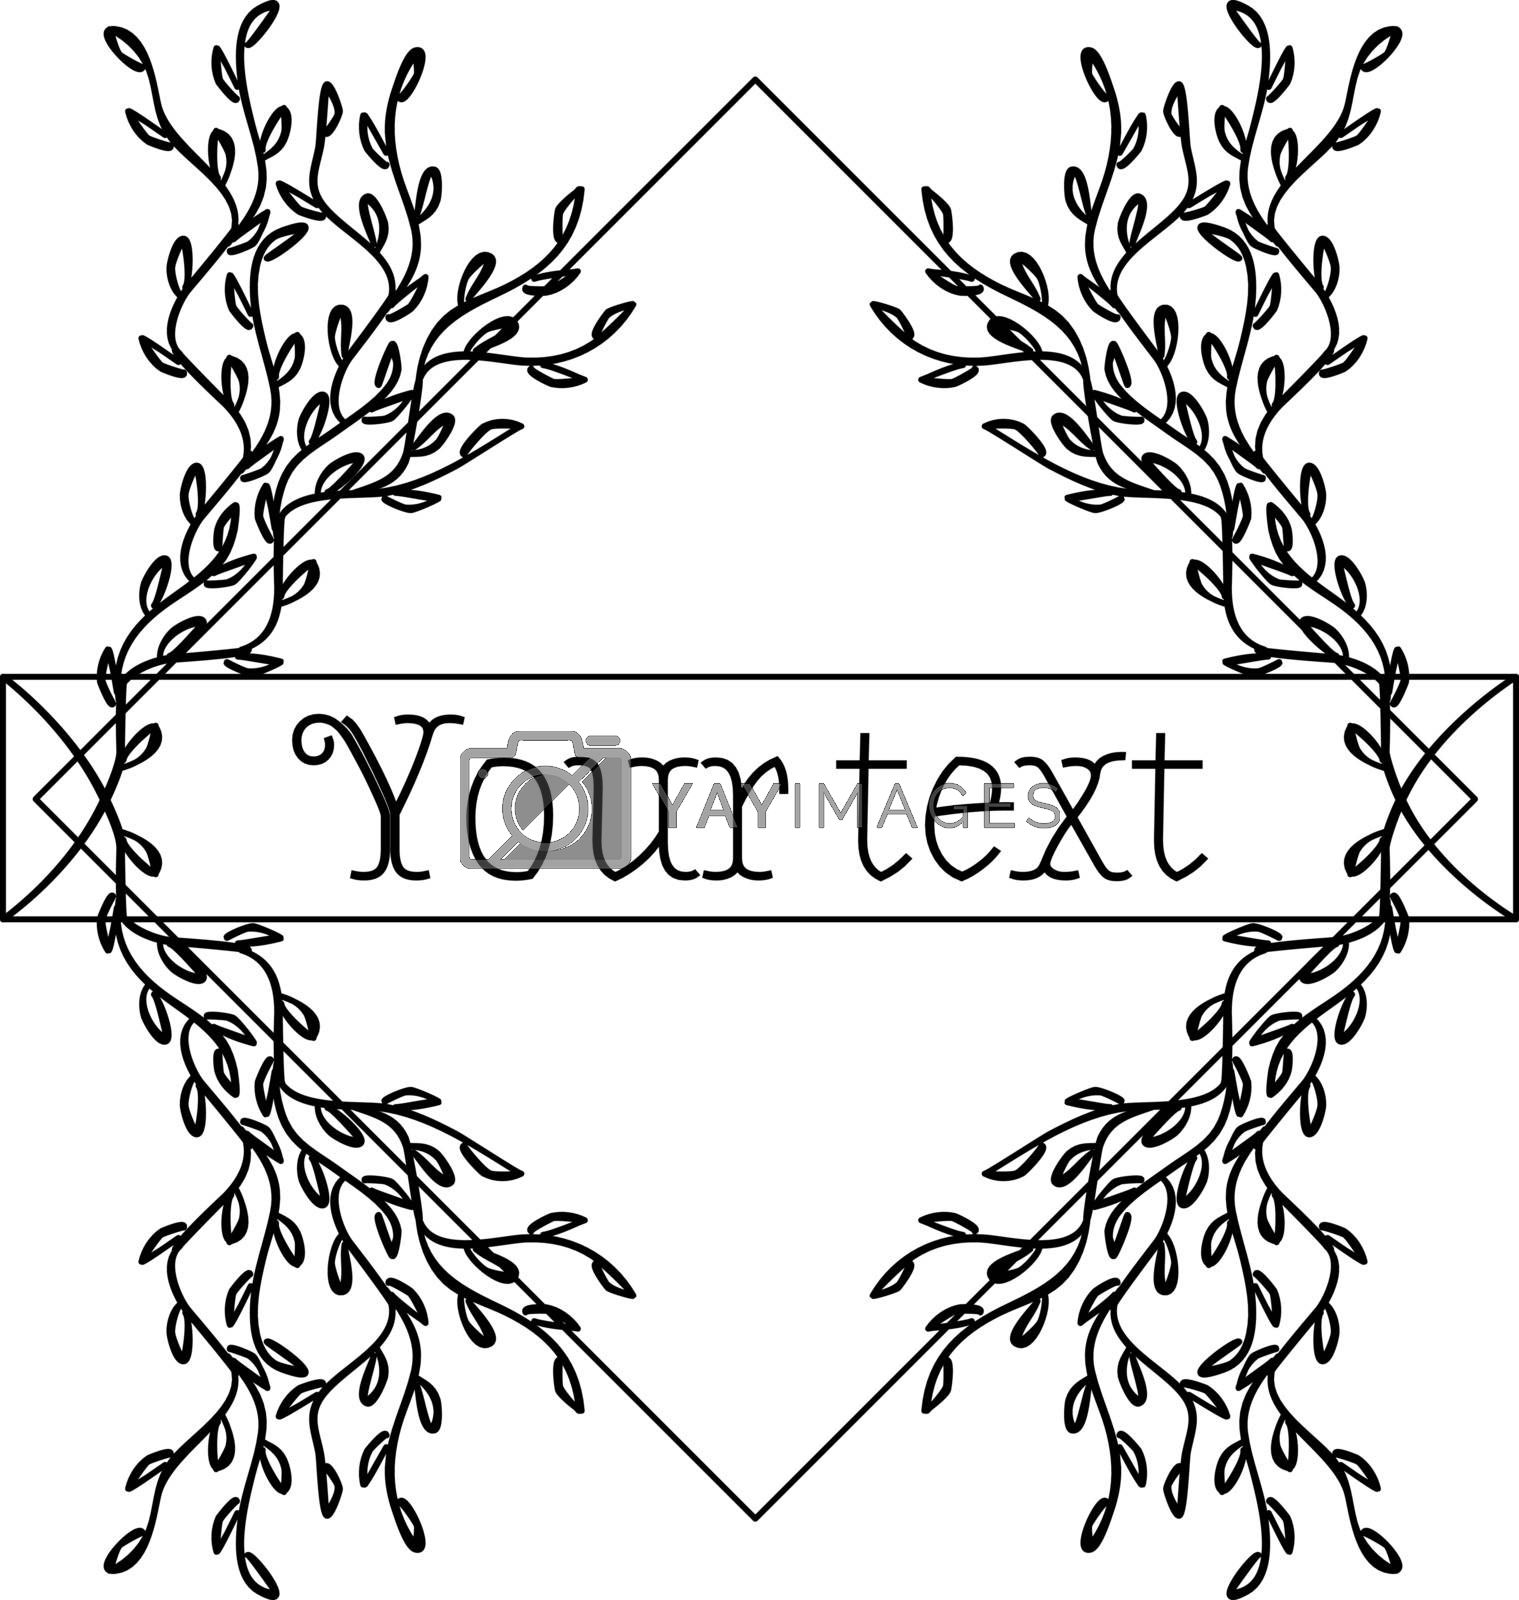 Romantic frame with symmetric tender sketch branches and text template